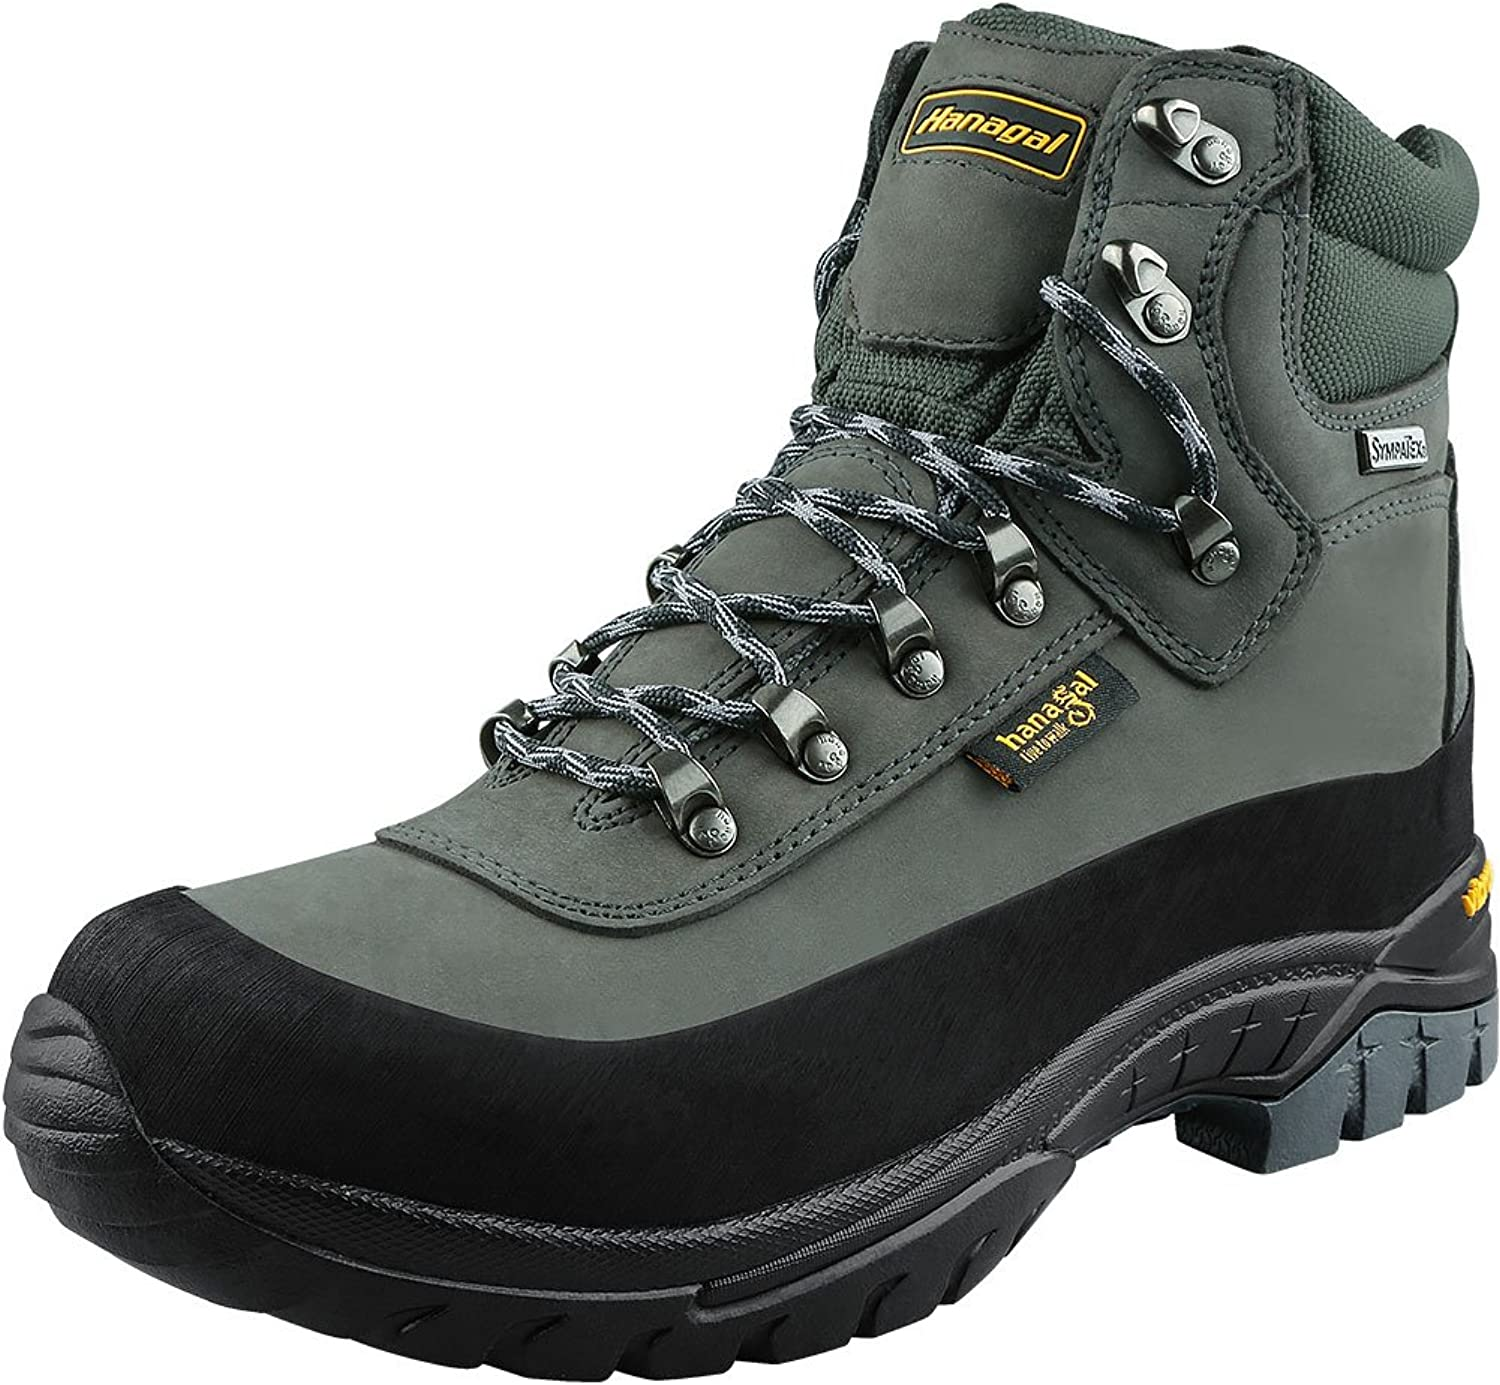 HANAGAL Men's Tangula Waterproof Hiking Boots, Vibram Soles